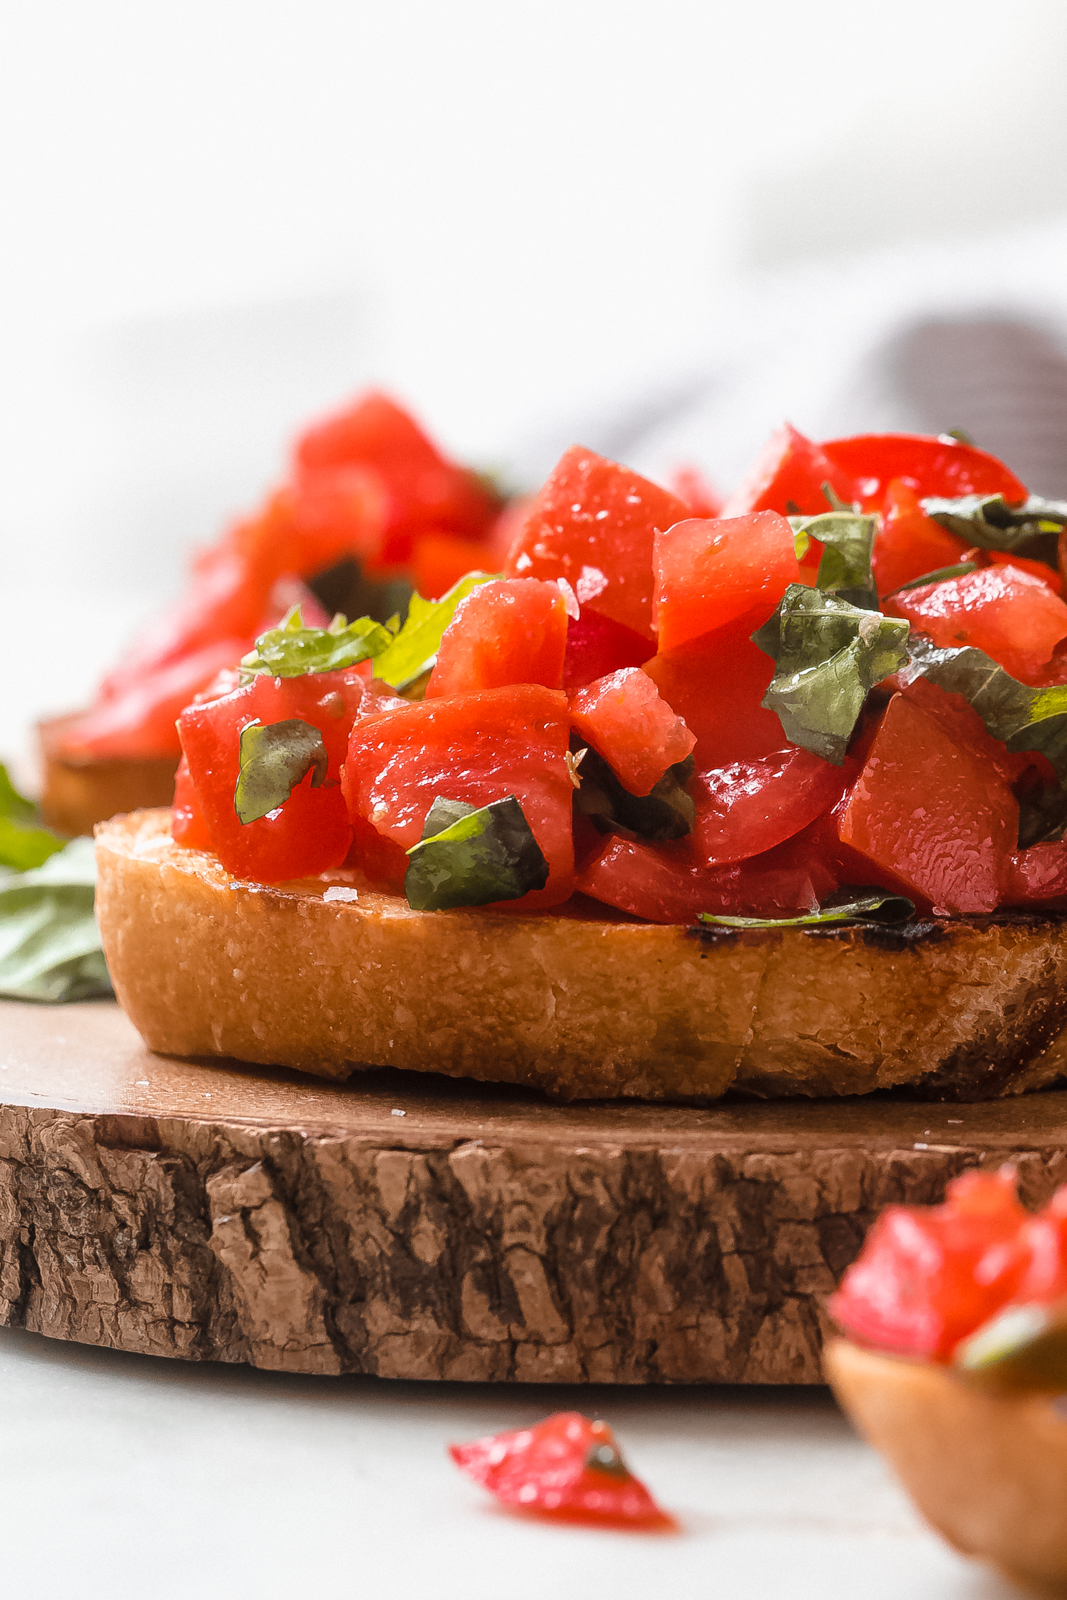 fresh tomatoes and basil on garlic scented baguette on wood surface